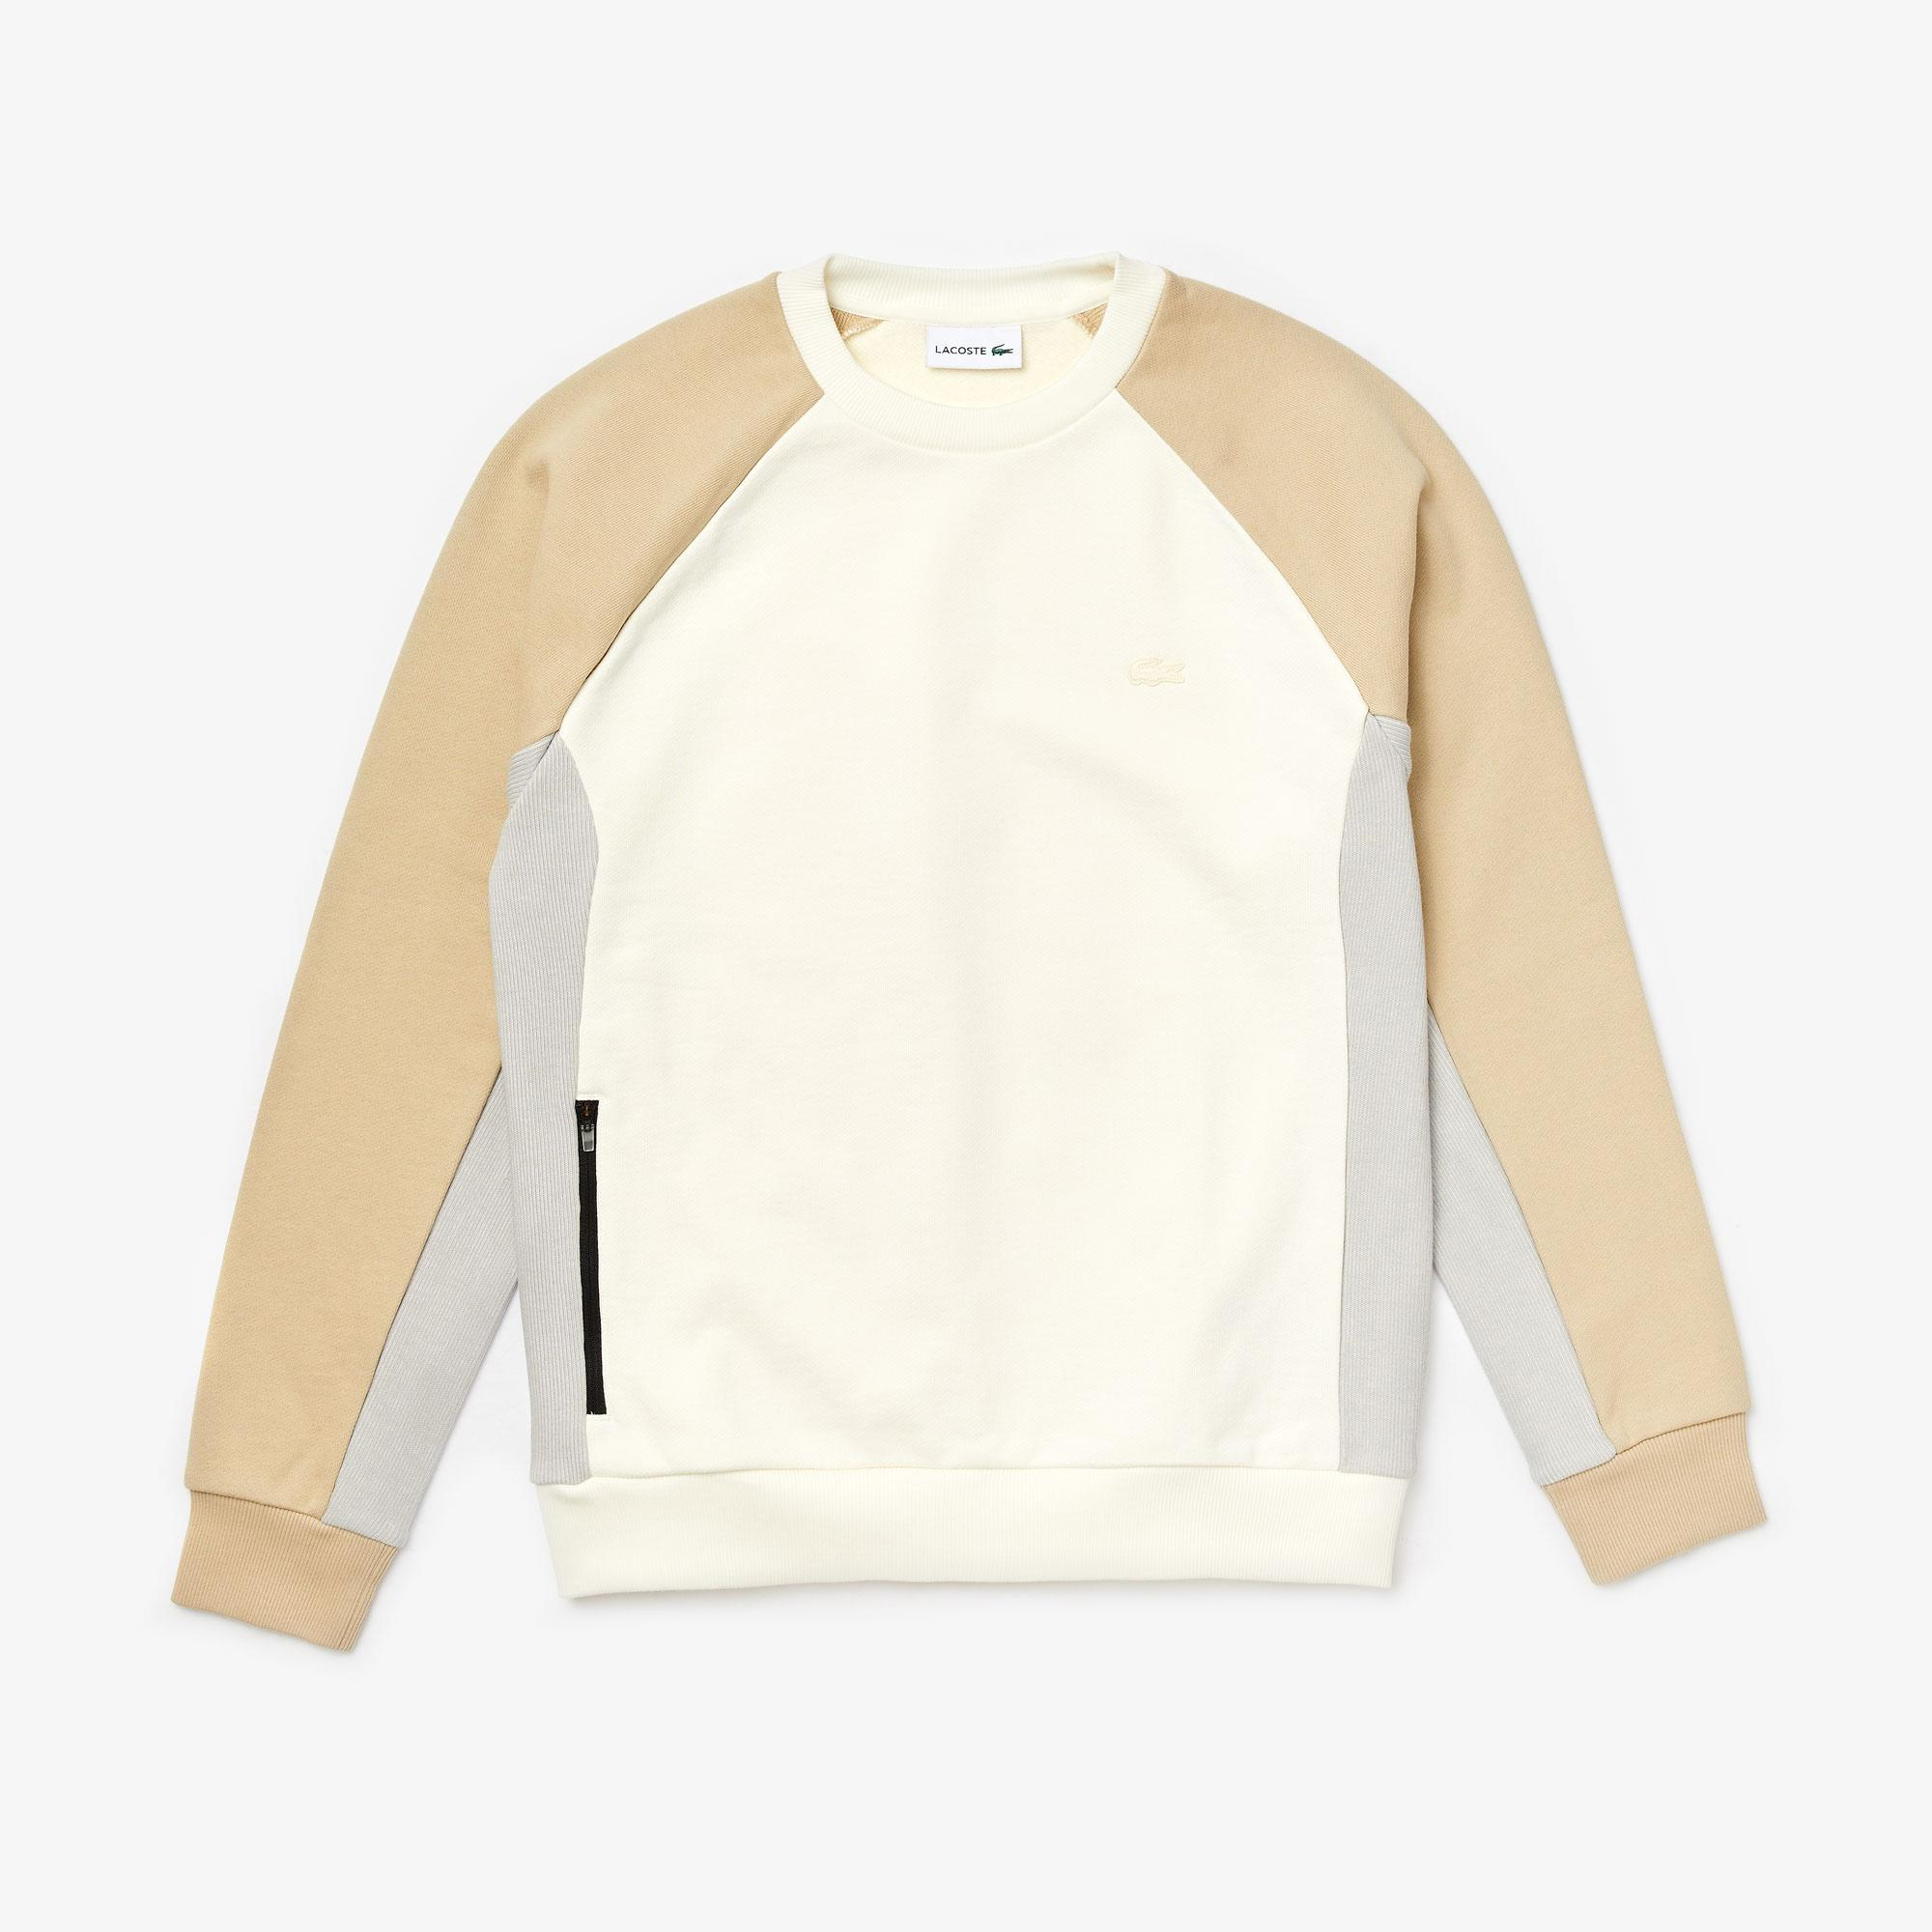 Lacoste Men's Motion Colourblock Crew Neck Sweatshirt